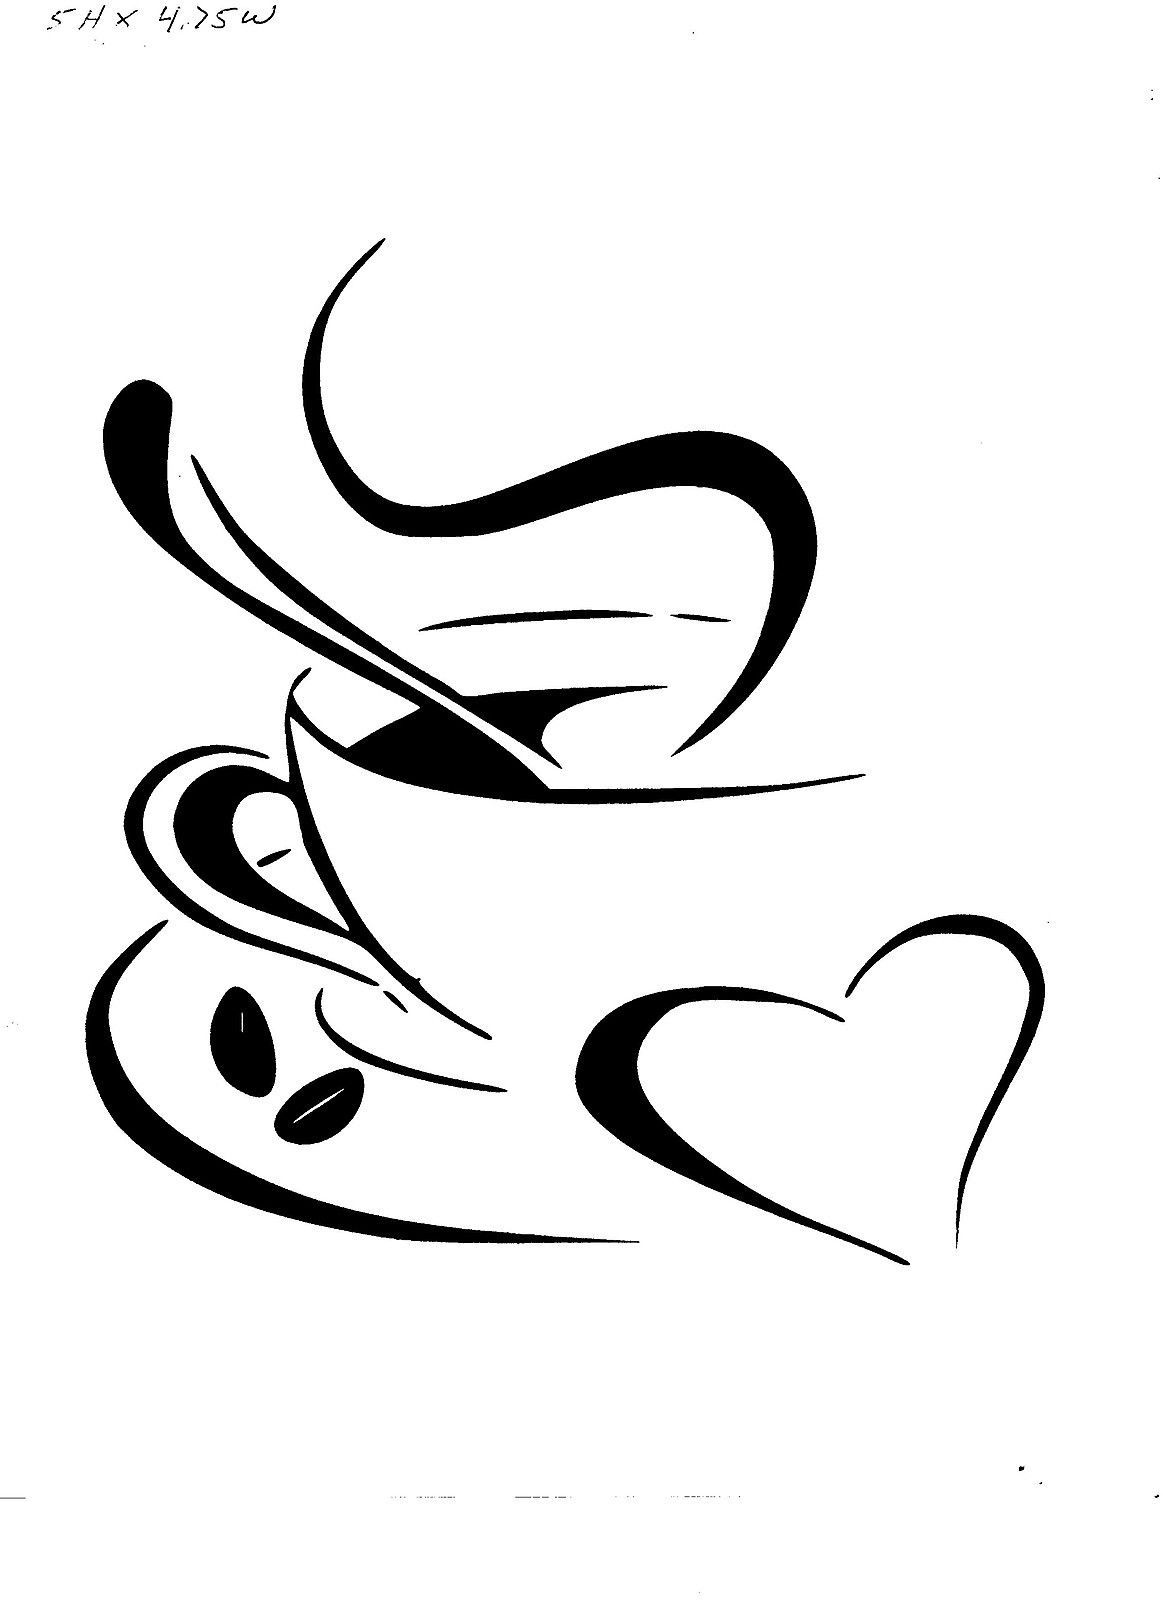 Coffee cup sketch - Vinyl Decal Sticker Coffee Cup With Heart